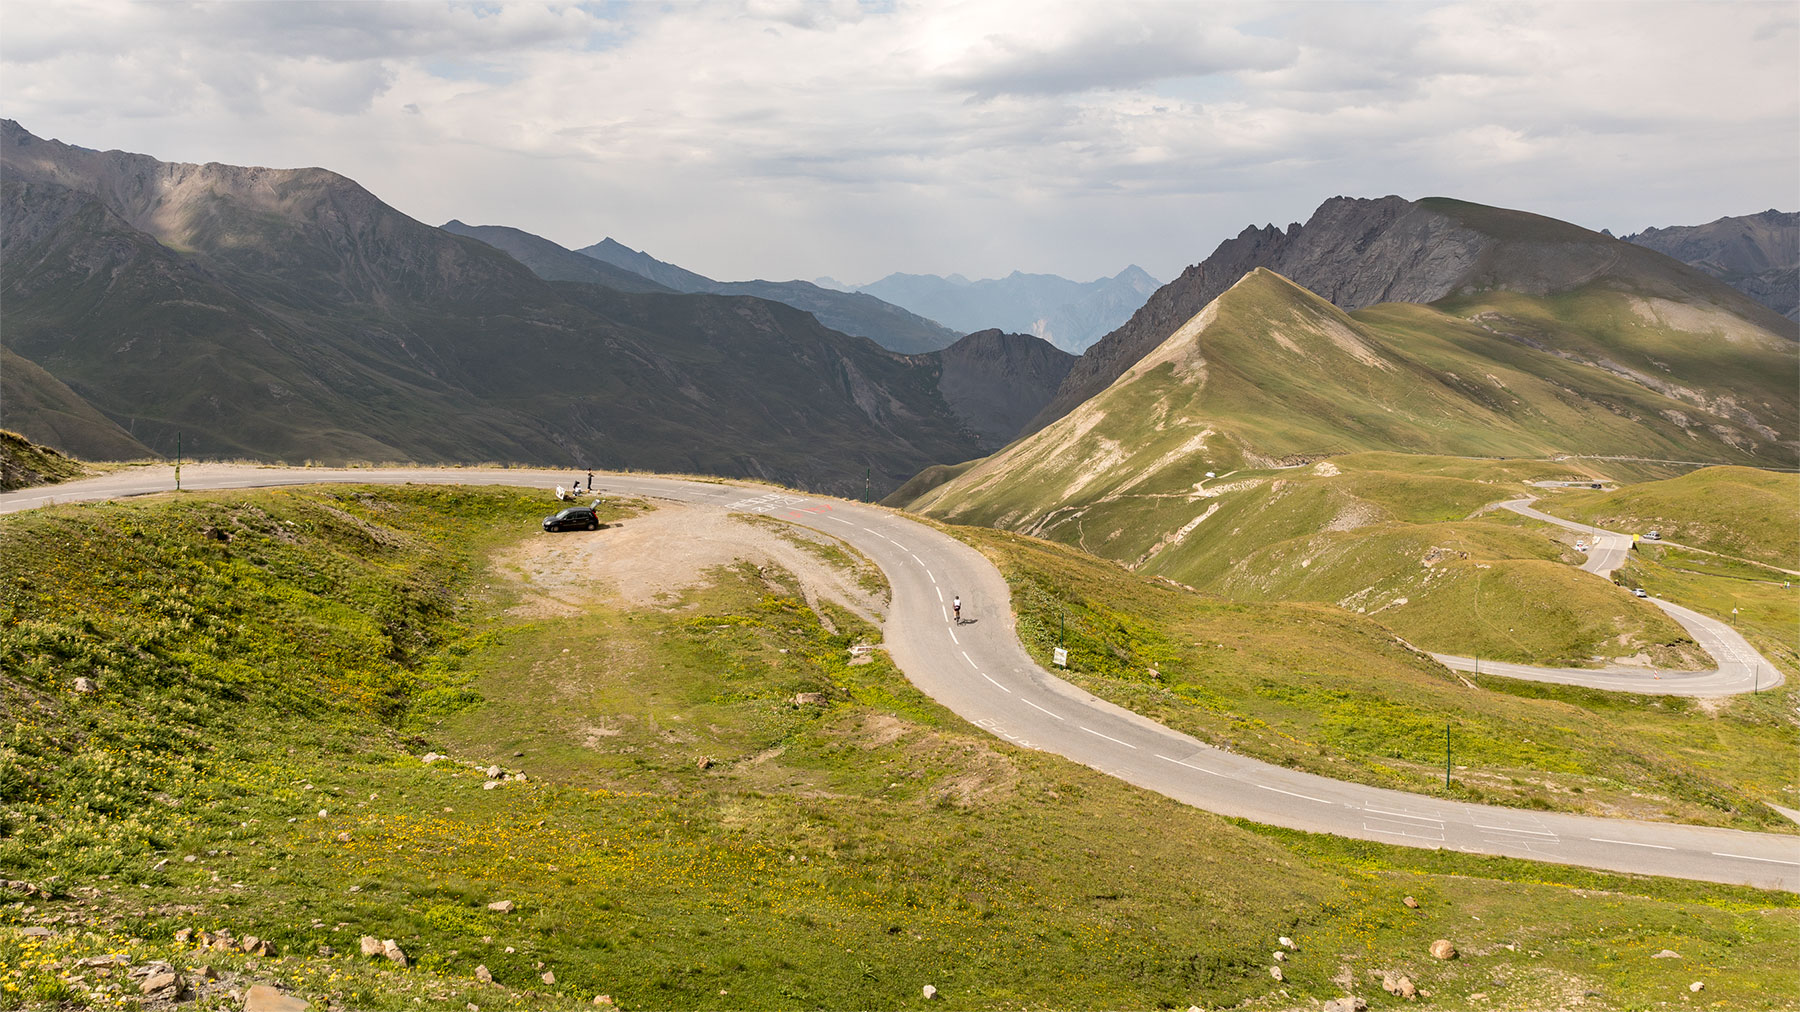 View of the northern ascent of the Col du Galibier.